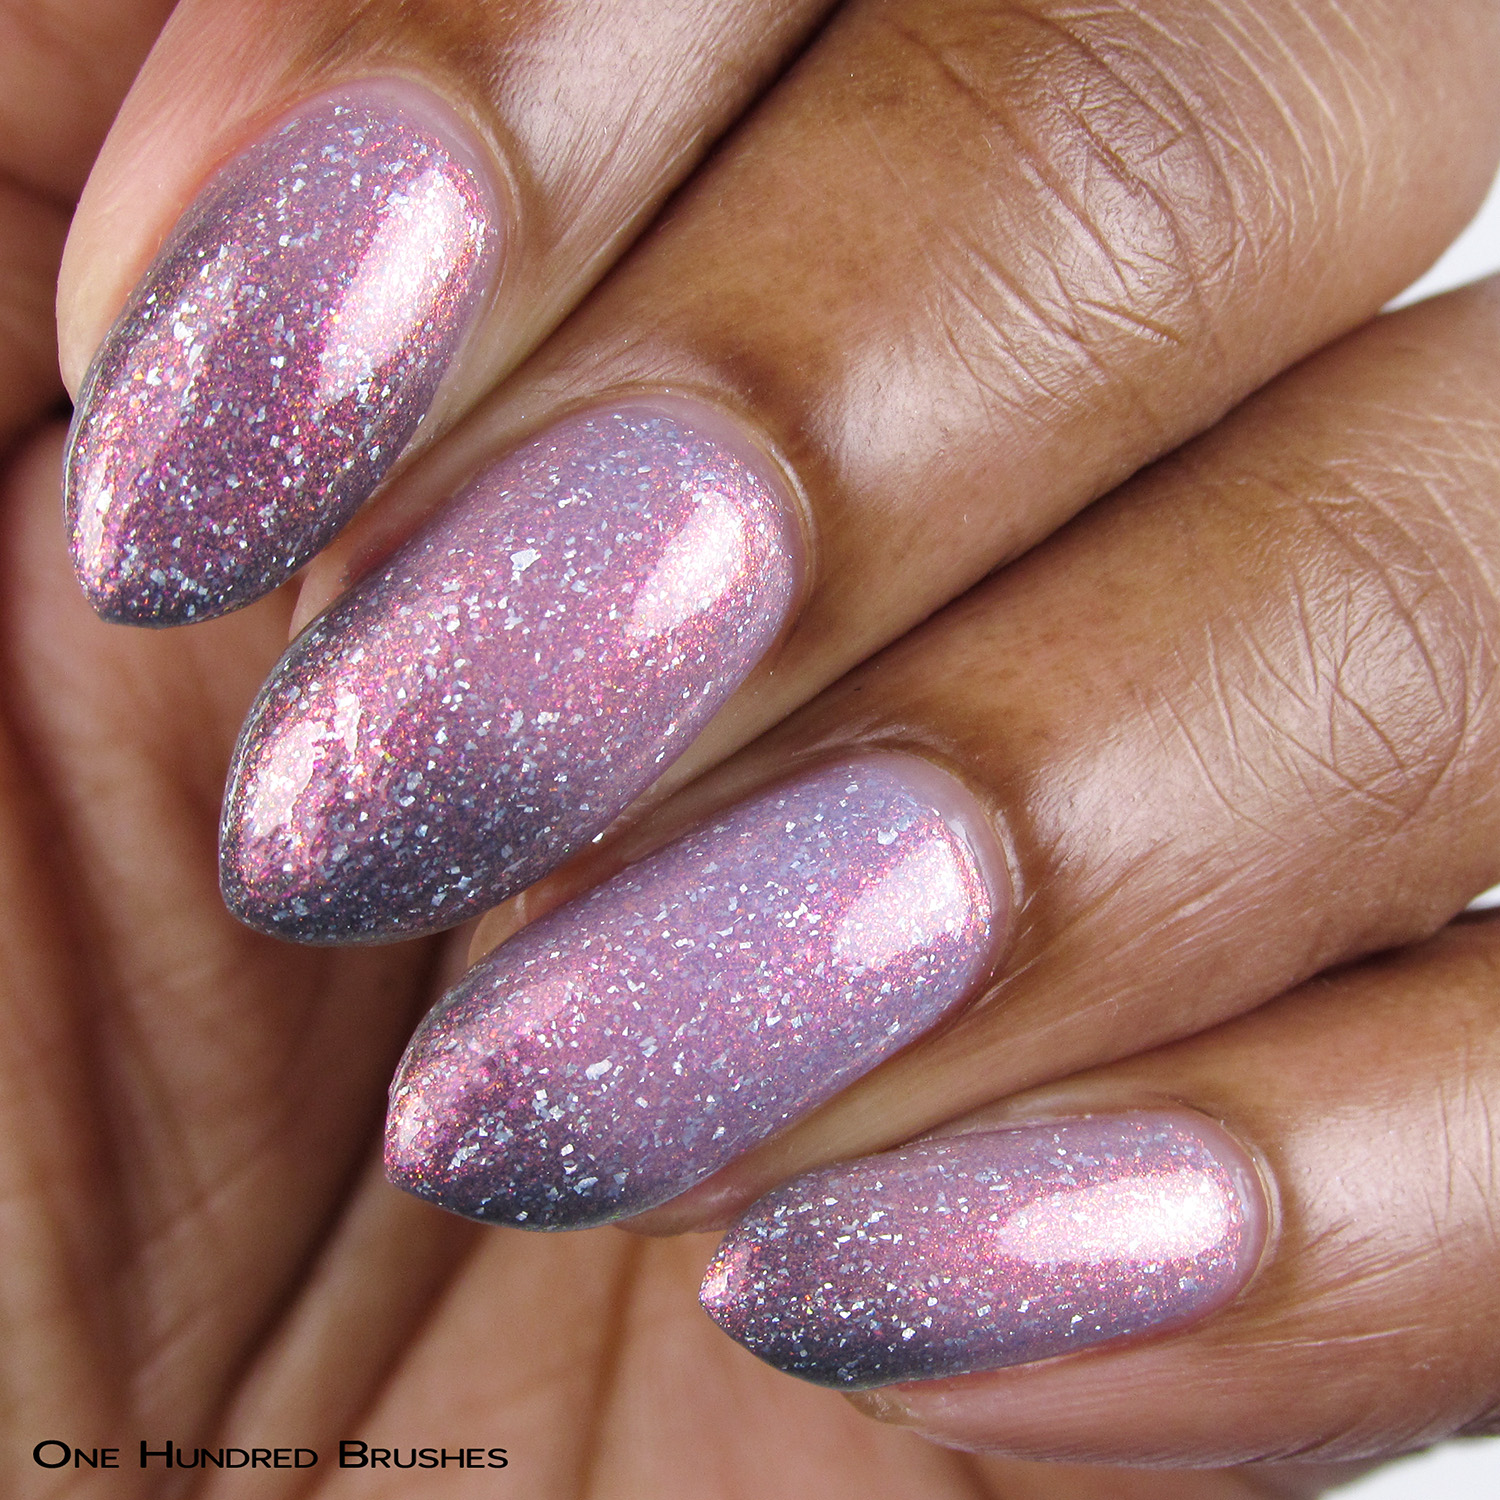 At The End Of All Things - Great Lakes Lacquer - Hella Handmade Creations Apr 2019